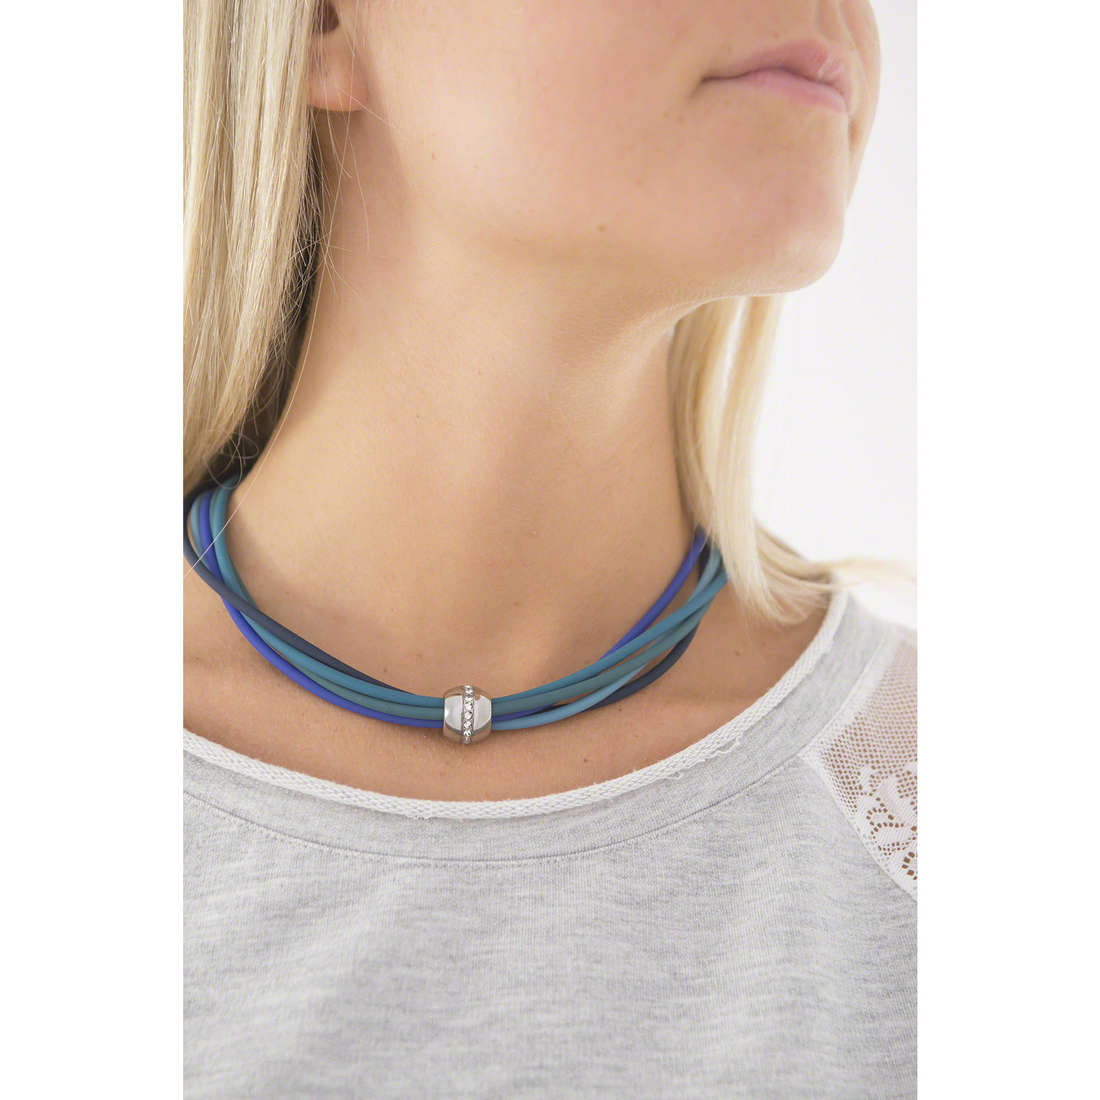 Hip Hop necklaces Cheer woman HJ0228 indosso